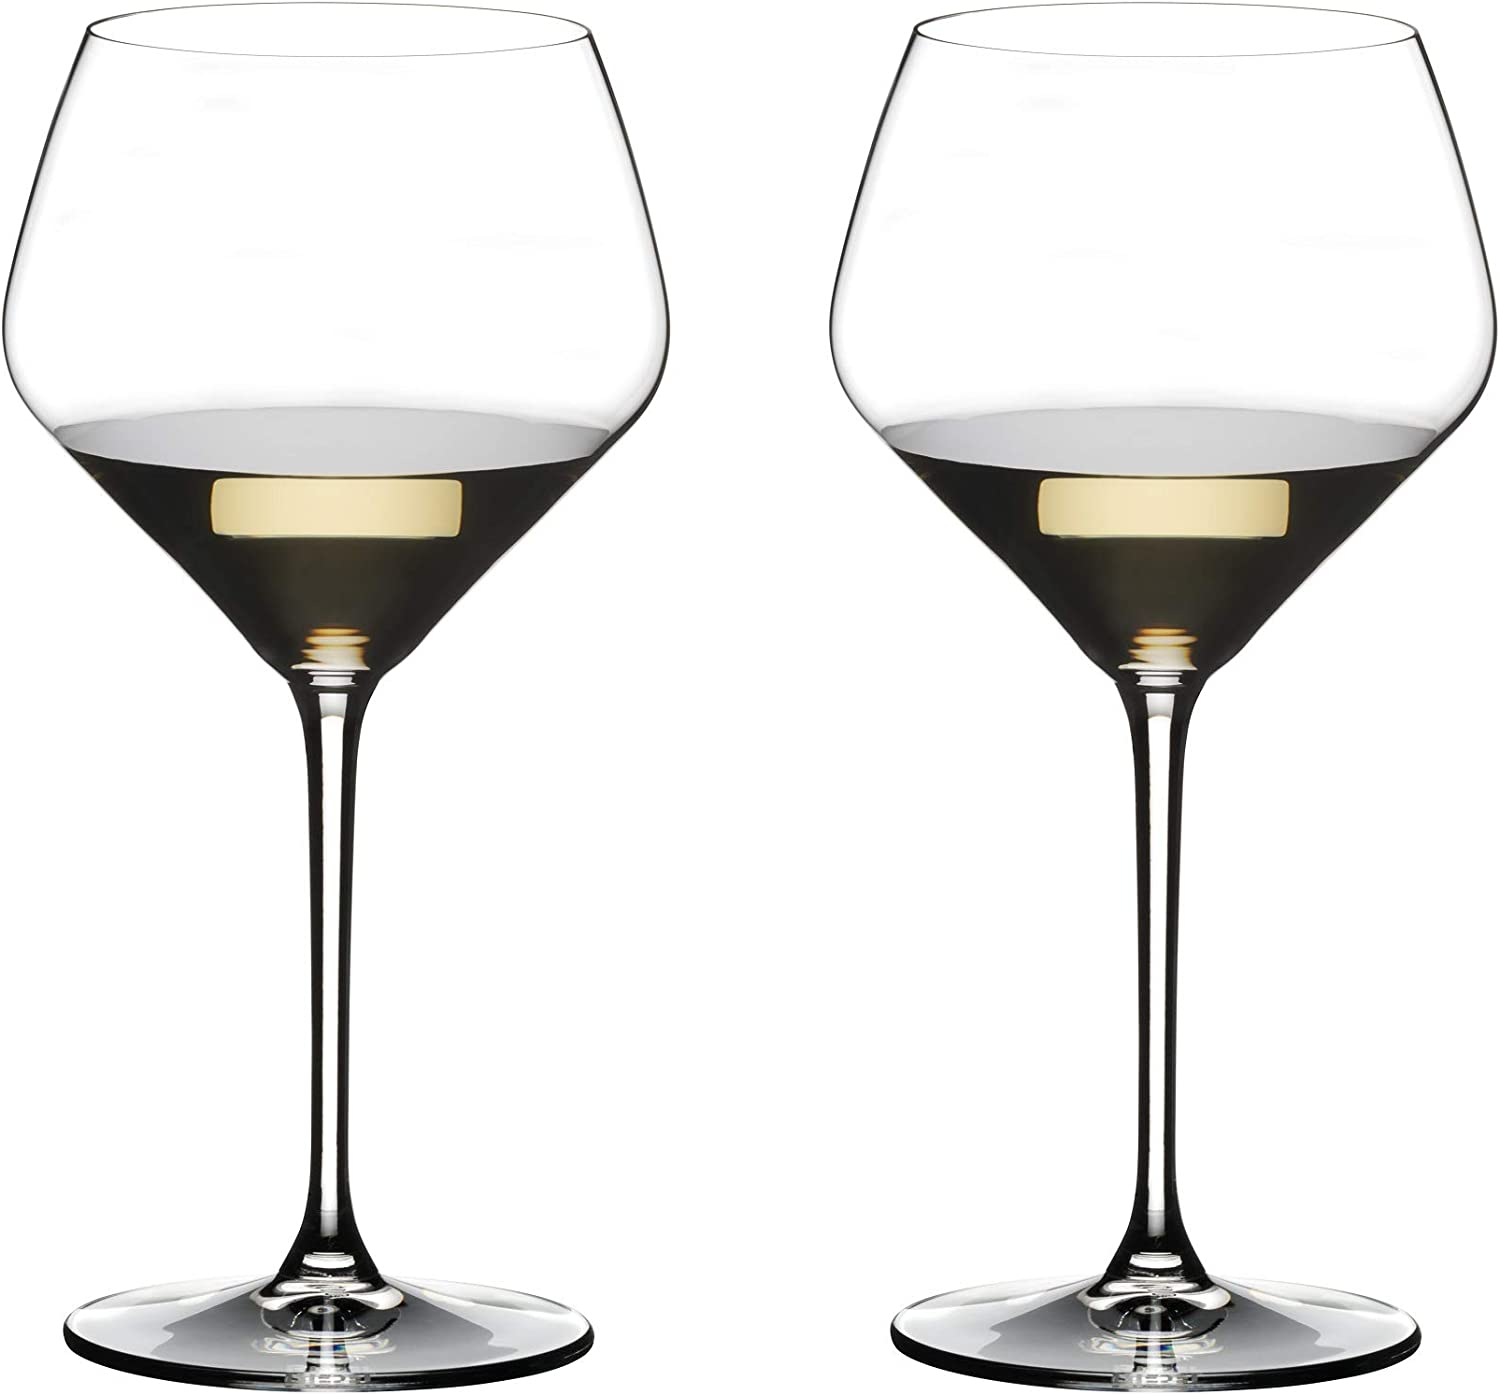 Riedel Extreme Oaked Chardonnay Glass, Set of 2, Clear